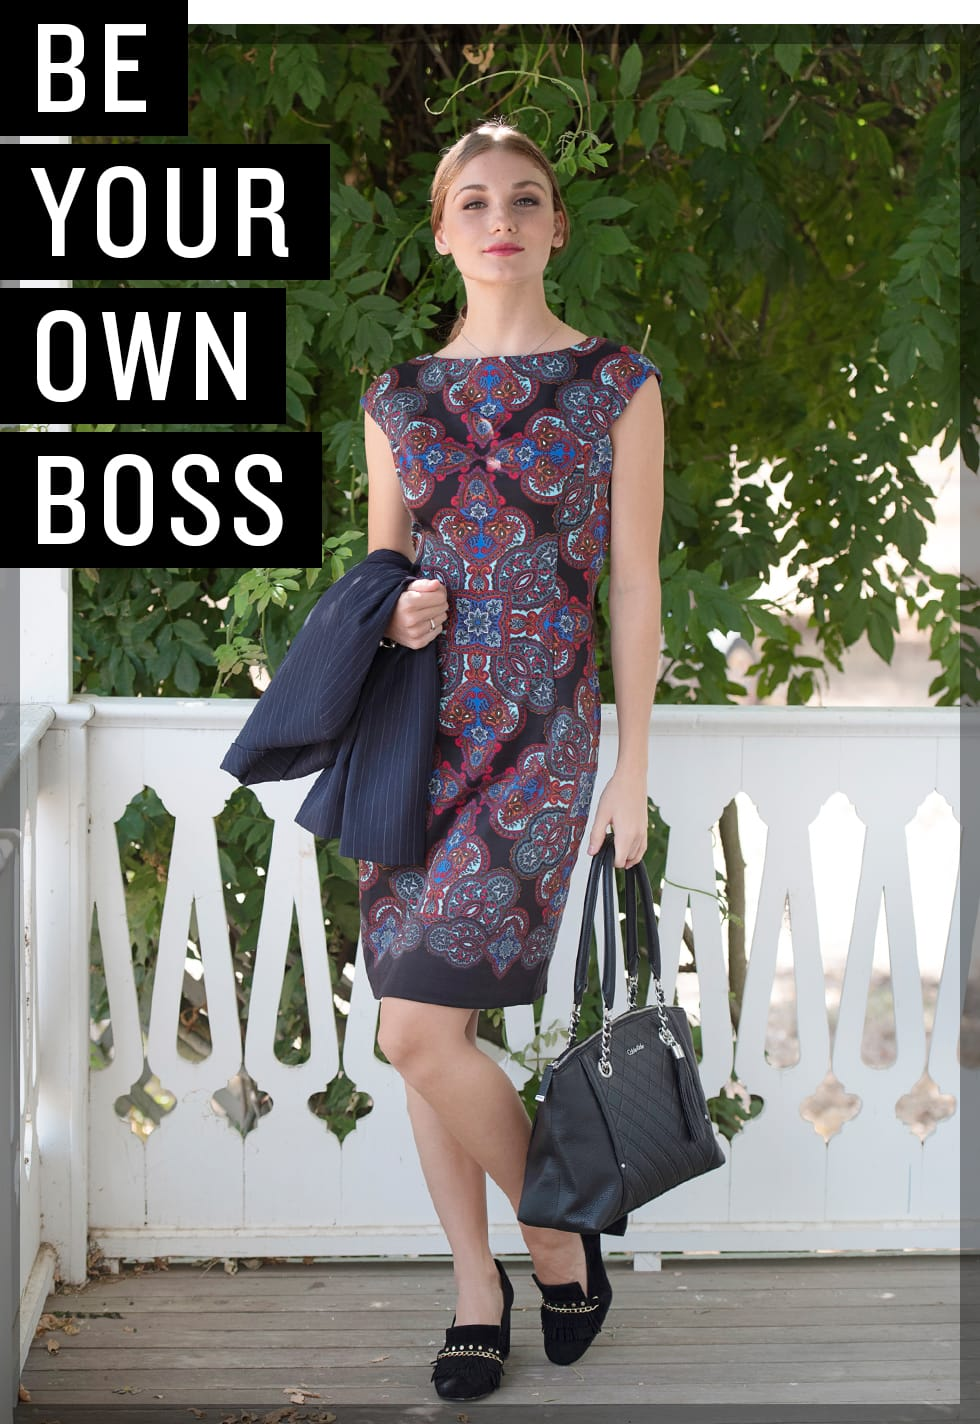 A 10/16 - Shop Women's Office Clothing